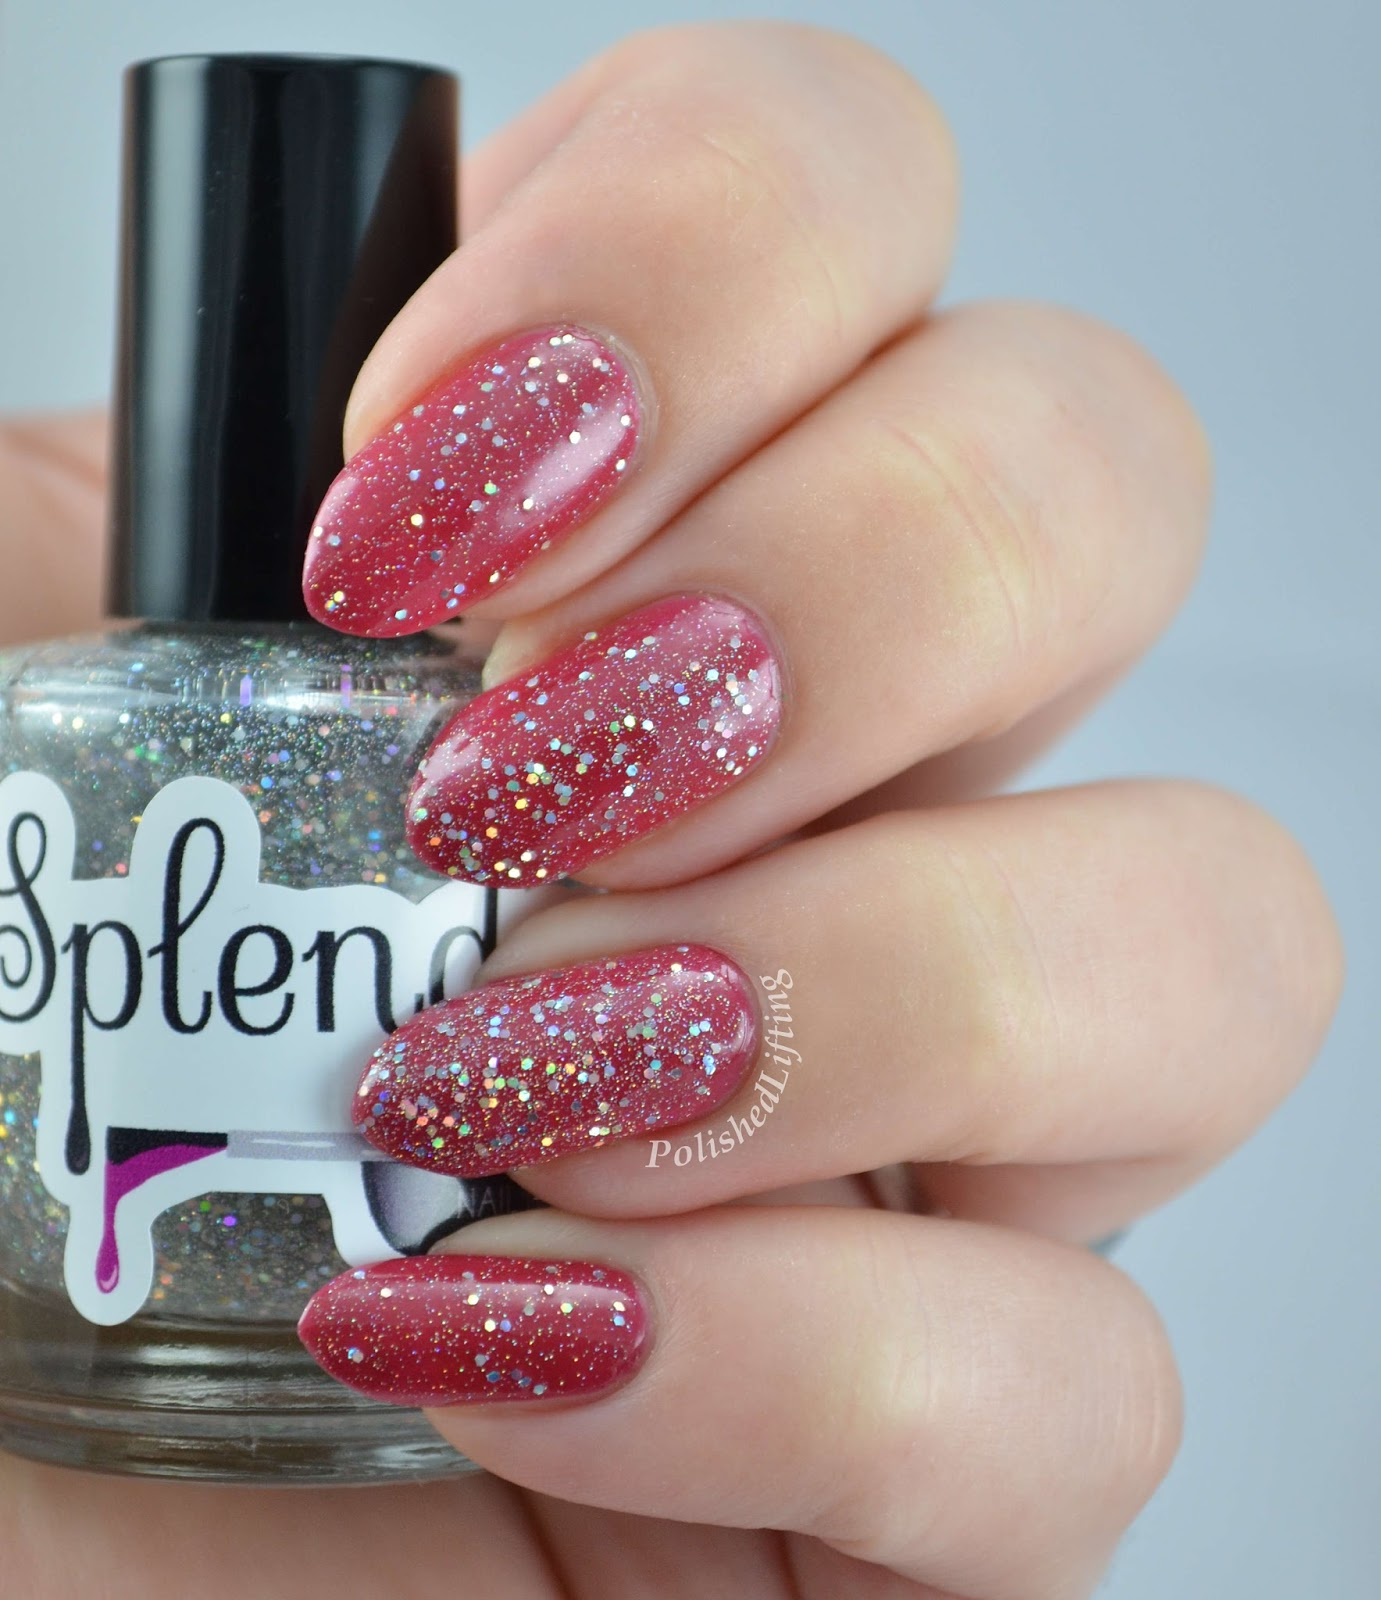 Splendor Nail Lacquer Back Up